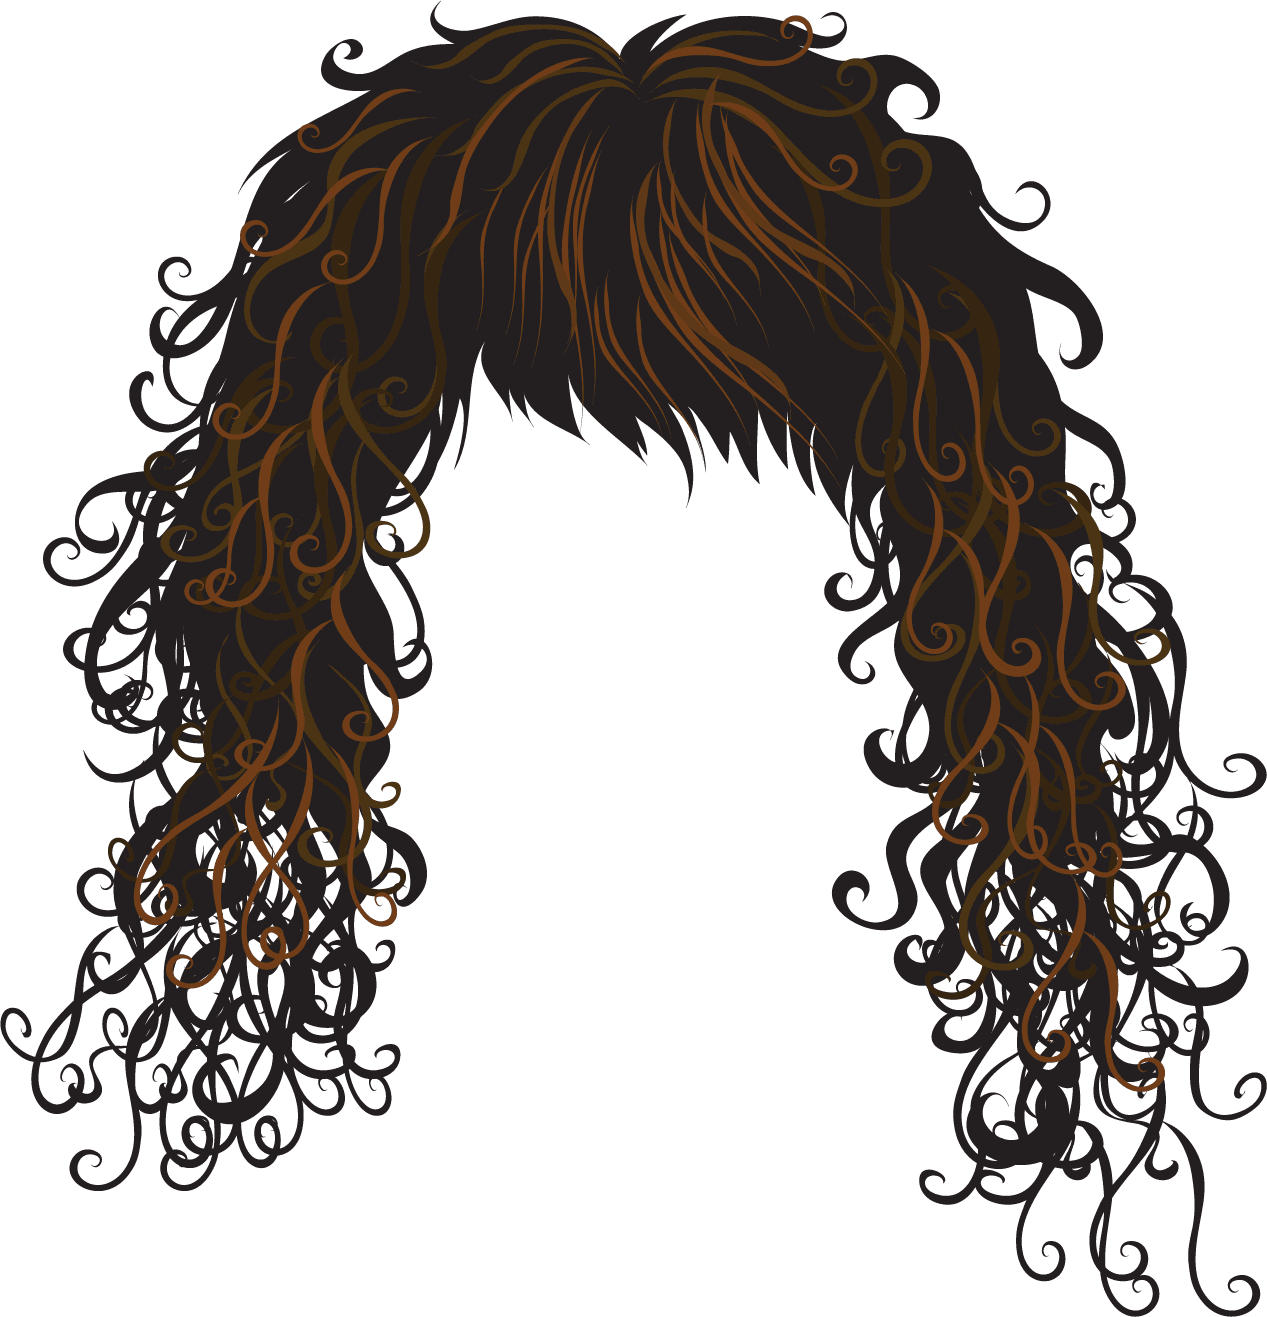 72 images of Crazy Hair Clip Art . You can use these free cliparts for ...: cliparts.co/crazy-hair-clip-art